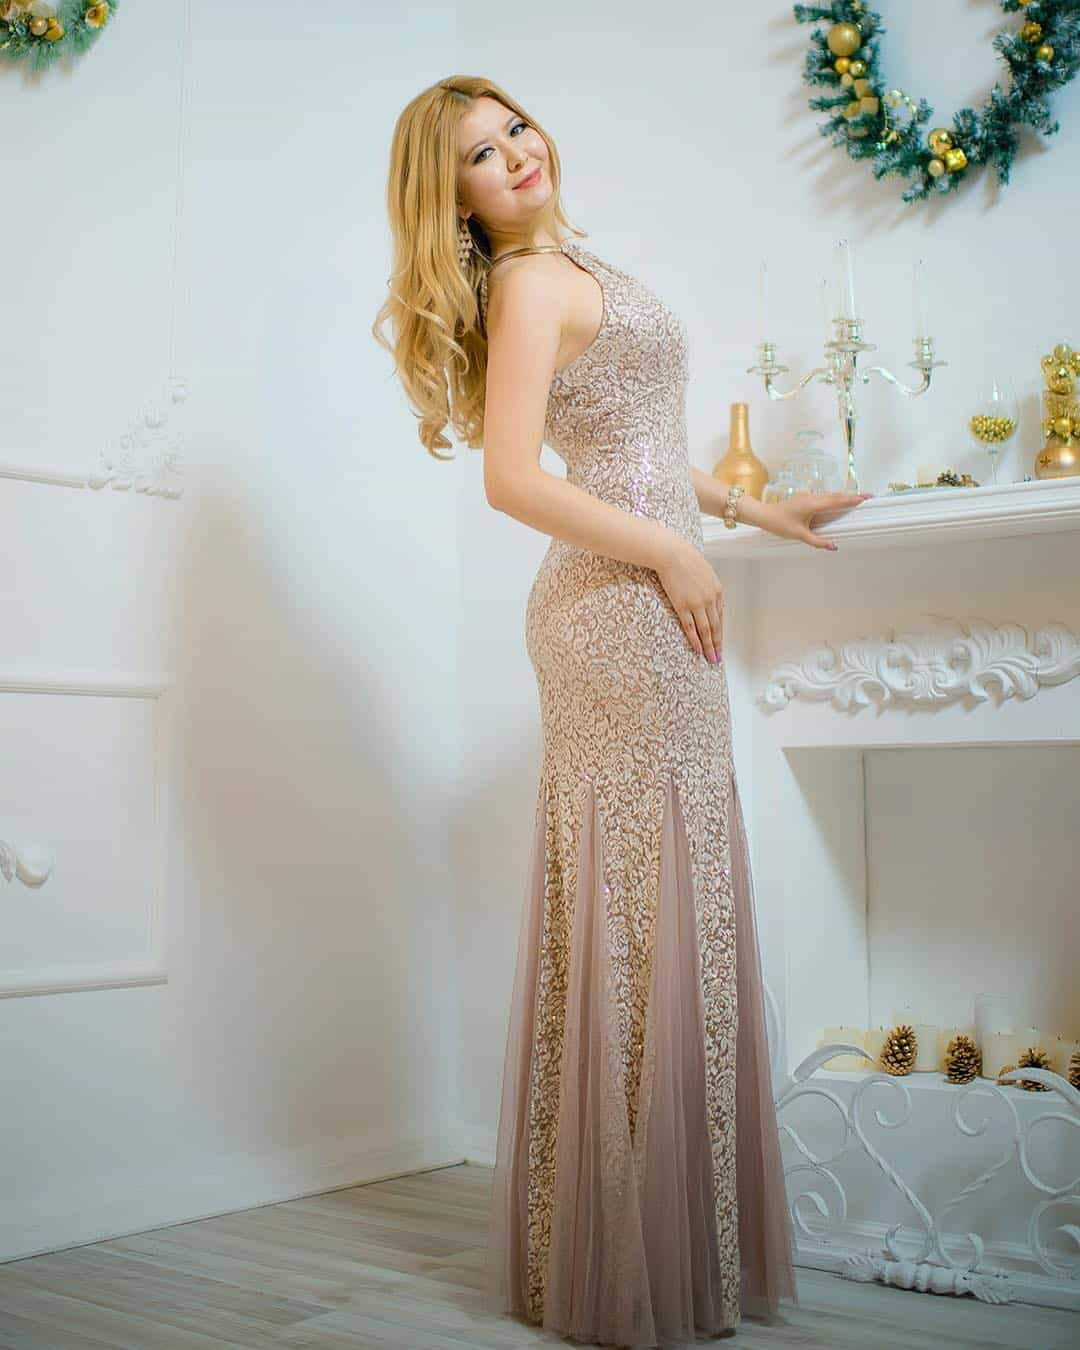 Top 6 Smart Ideas for New Years Eve Dresses 2020 (67 ...